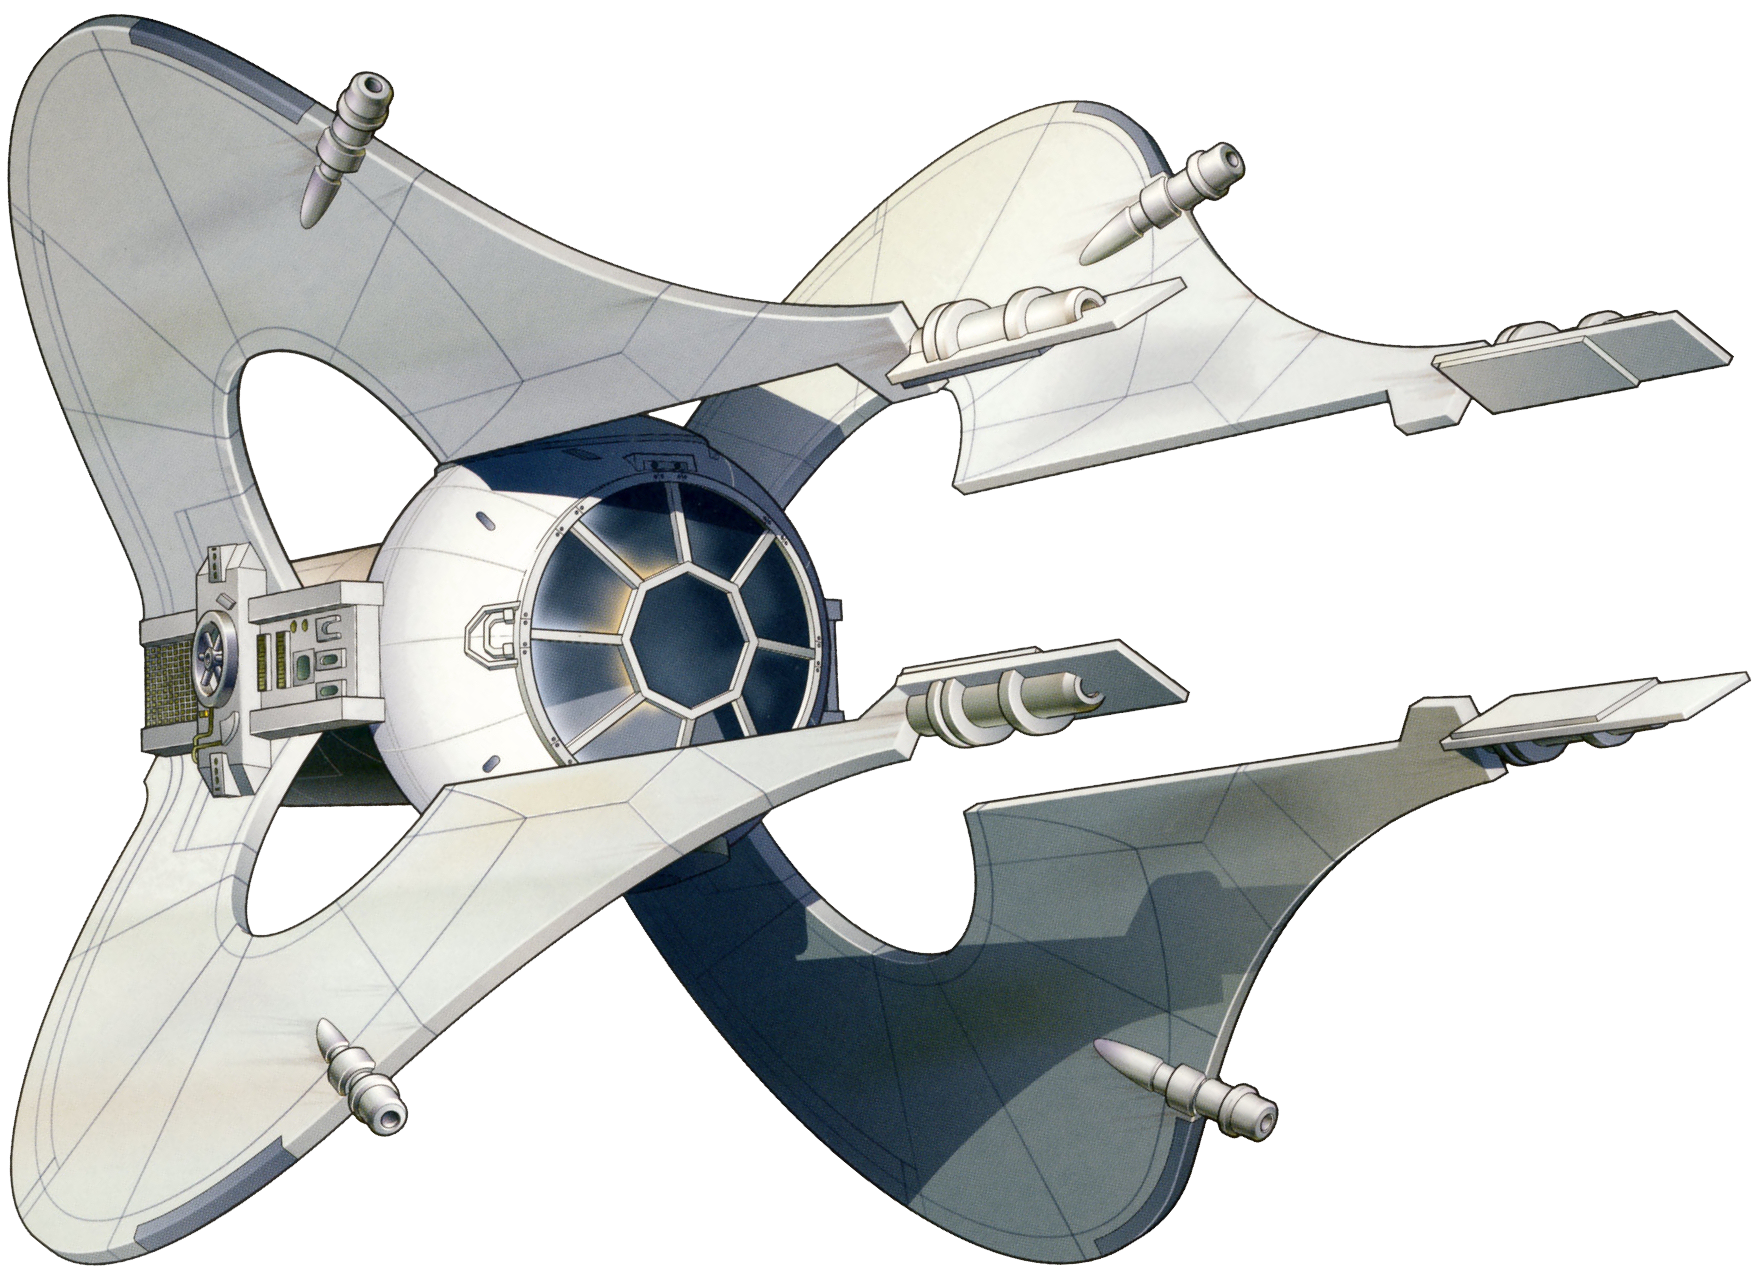 Nssis-class Clawcraft